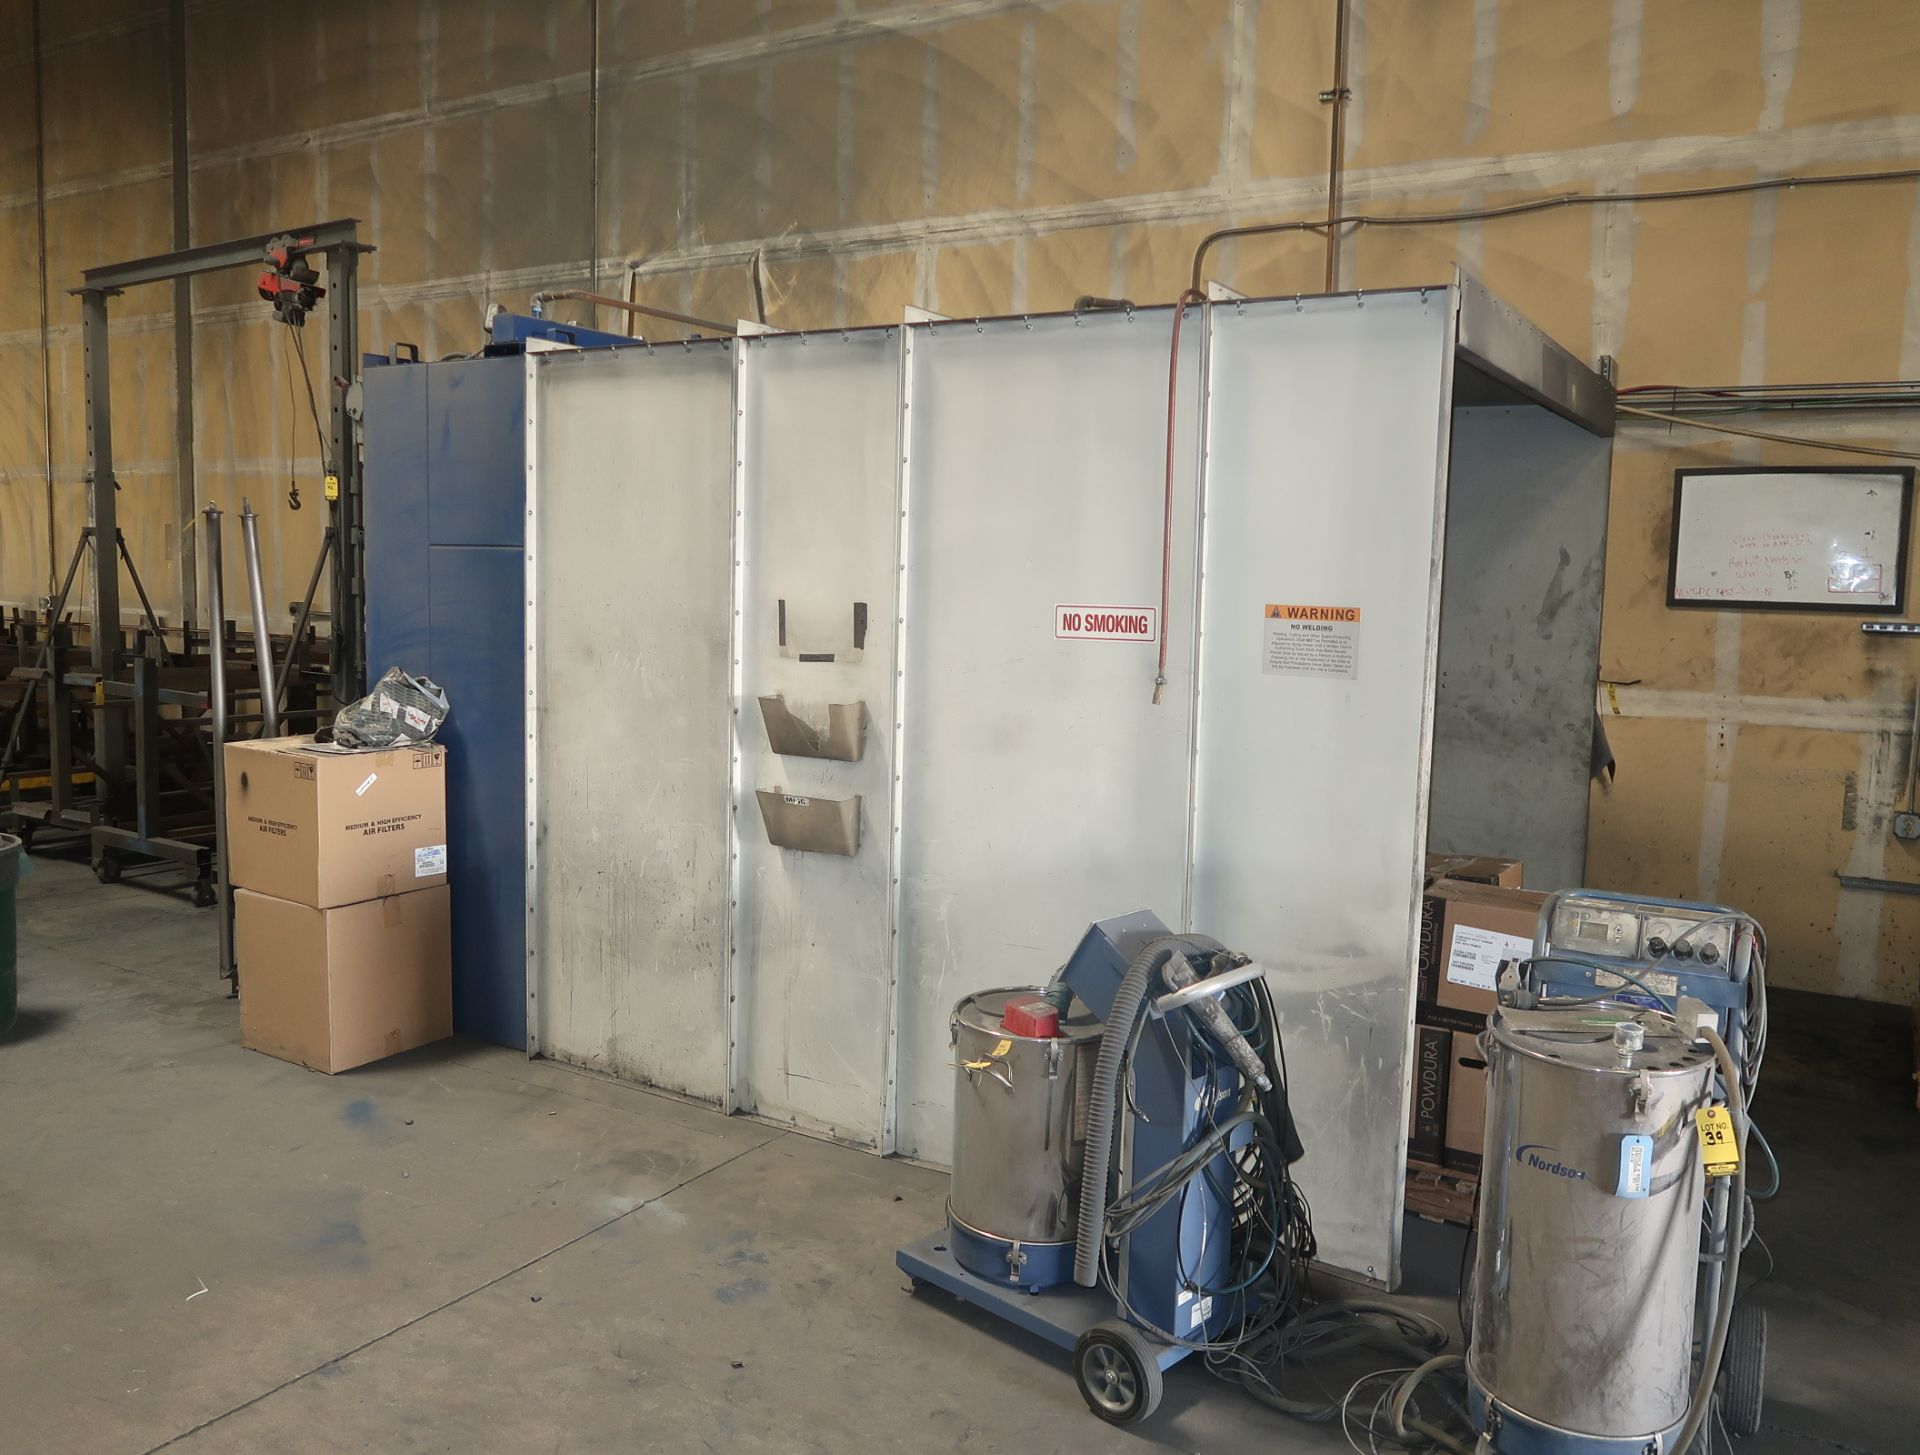 Lot 34 - GOLBAL FINISHING SOLUTIONS INDUSTRIAL SPRAY BOOTH 8'X8'X10' W/ PANEL MDL. PCDW-080810 SN. V400-18-A